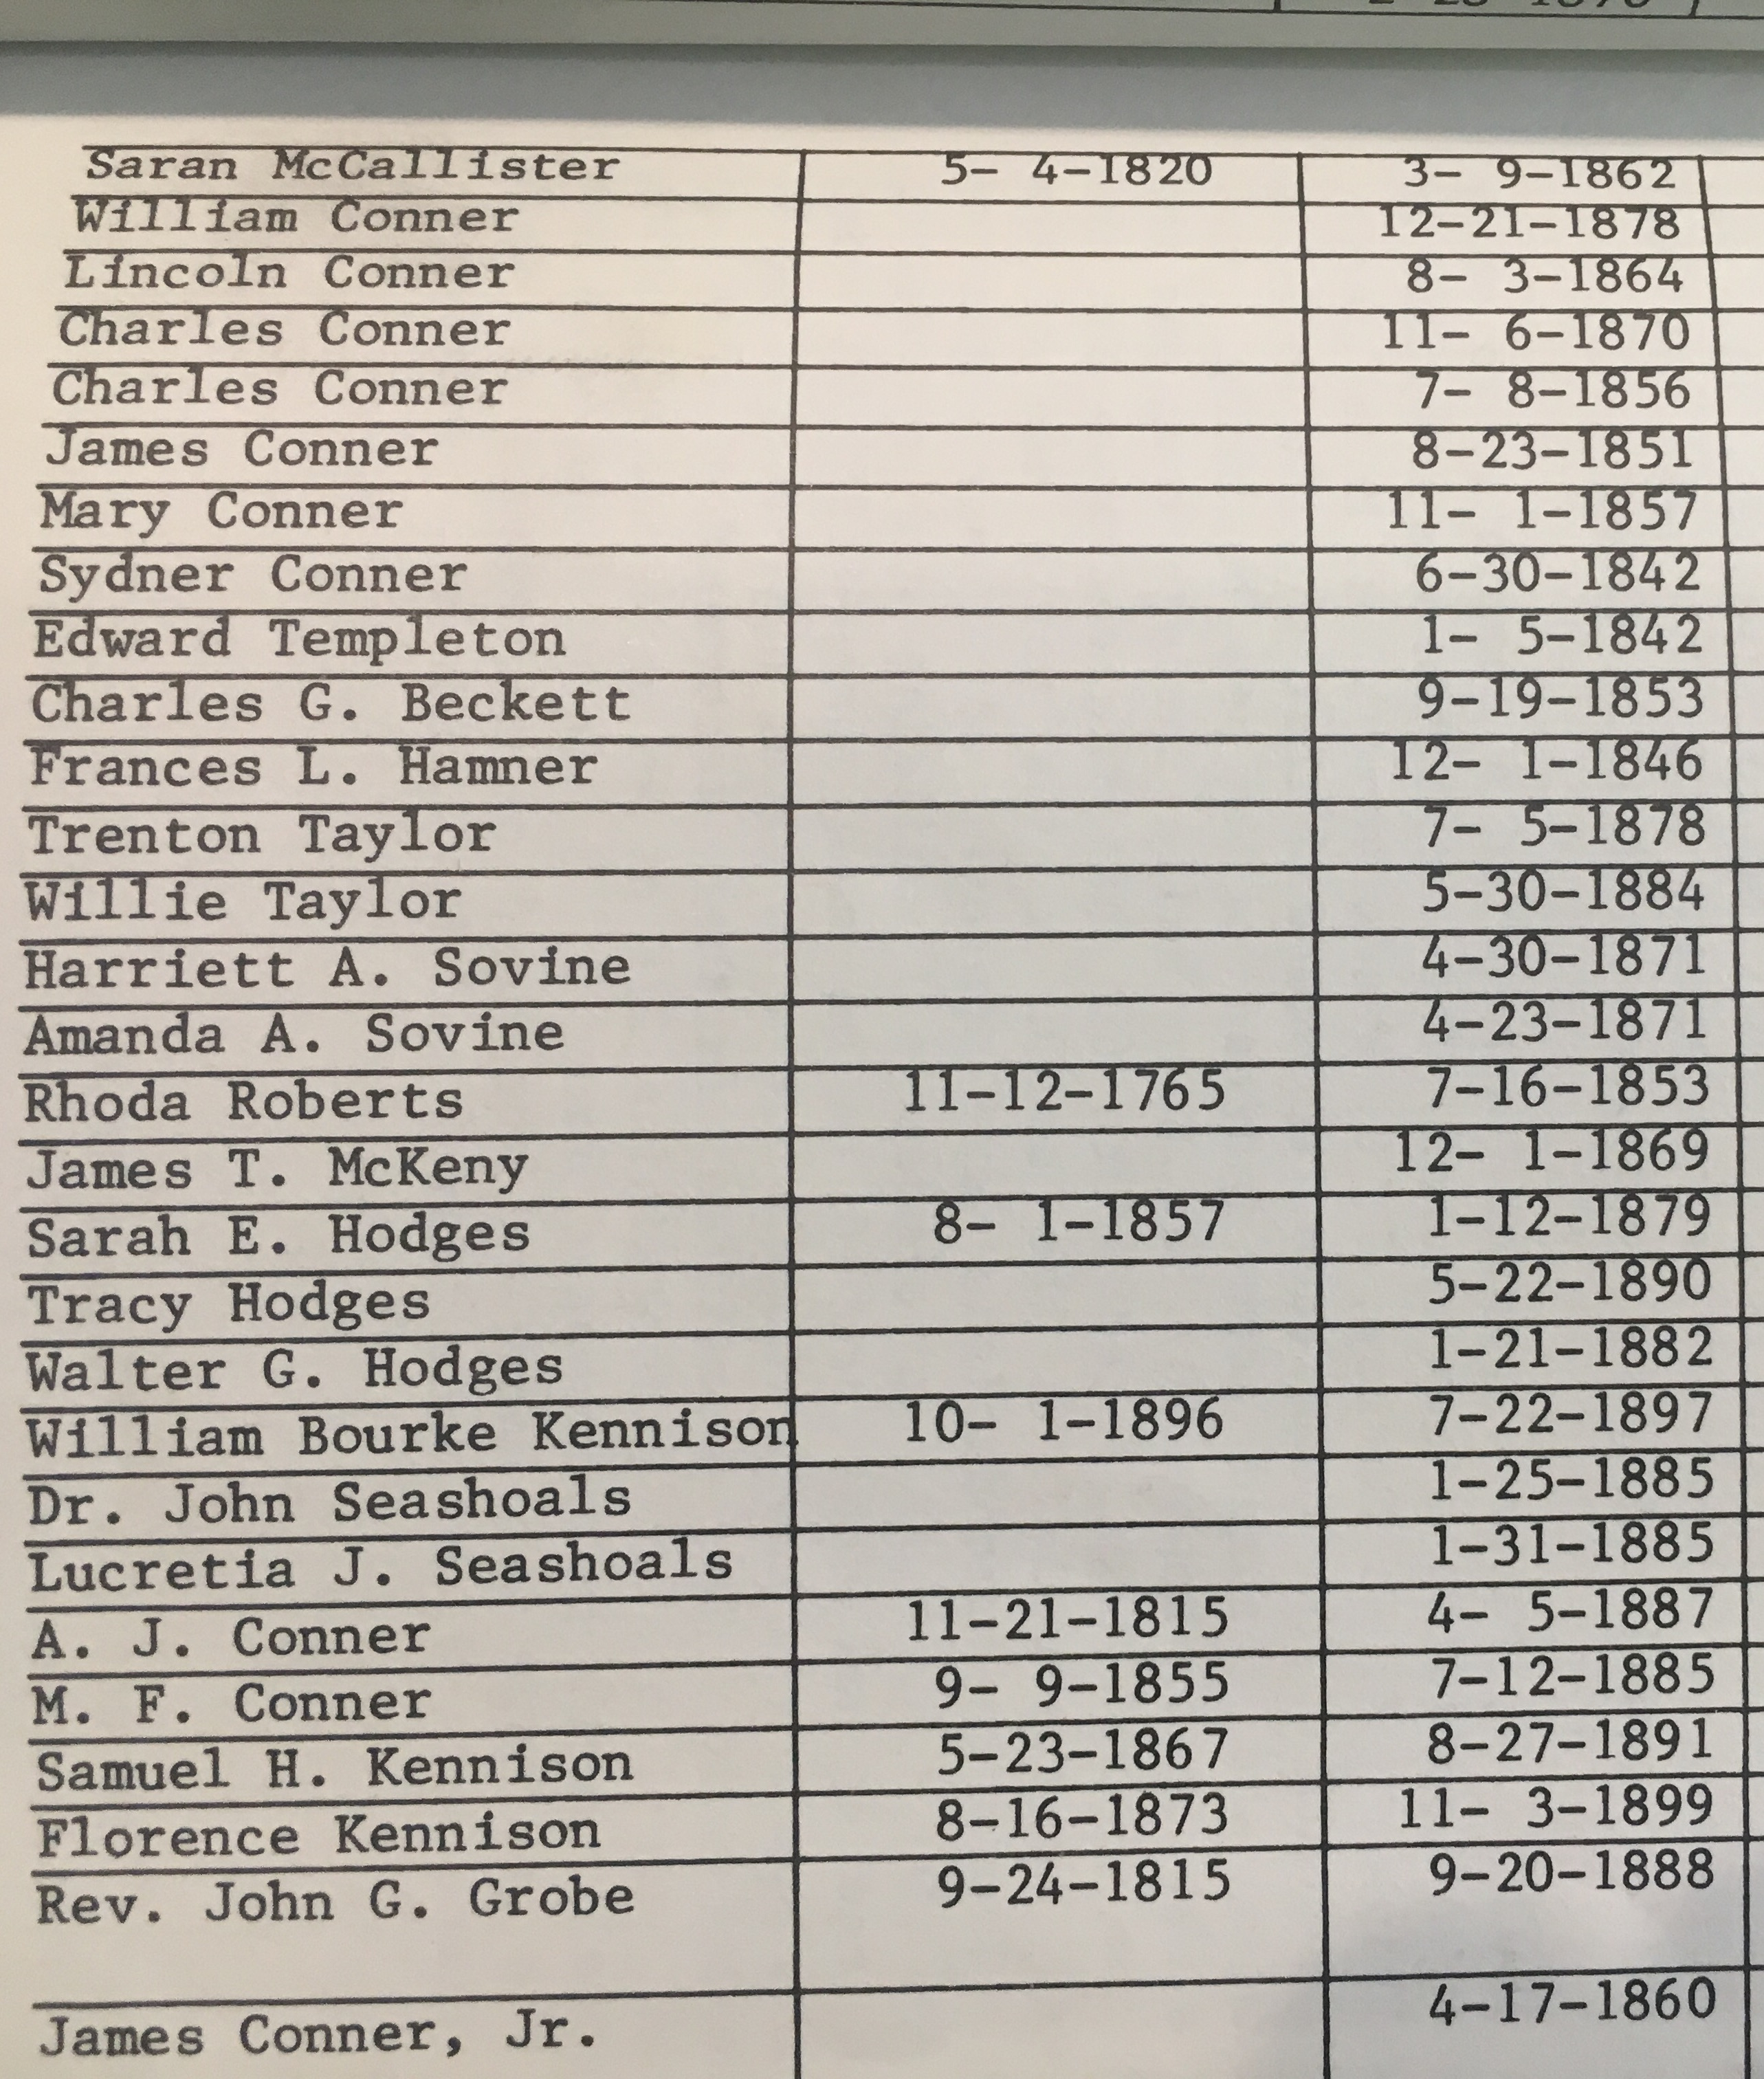 Second page of people with named markers in the cemetery